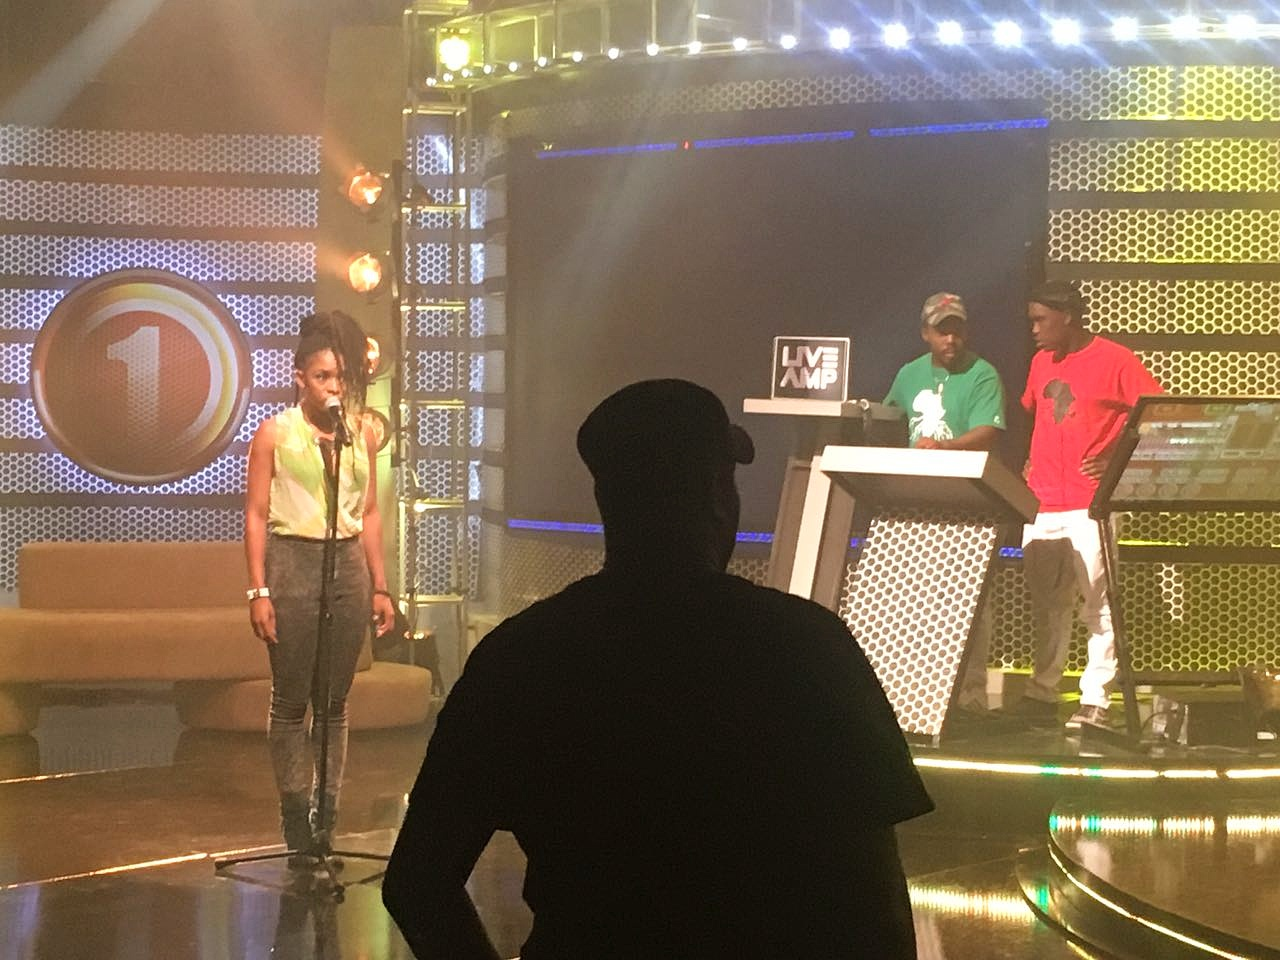 Crimson Blu on stage before performing SABC1s Live Amp